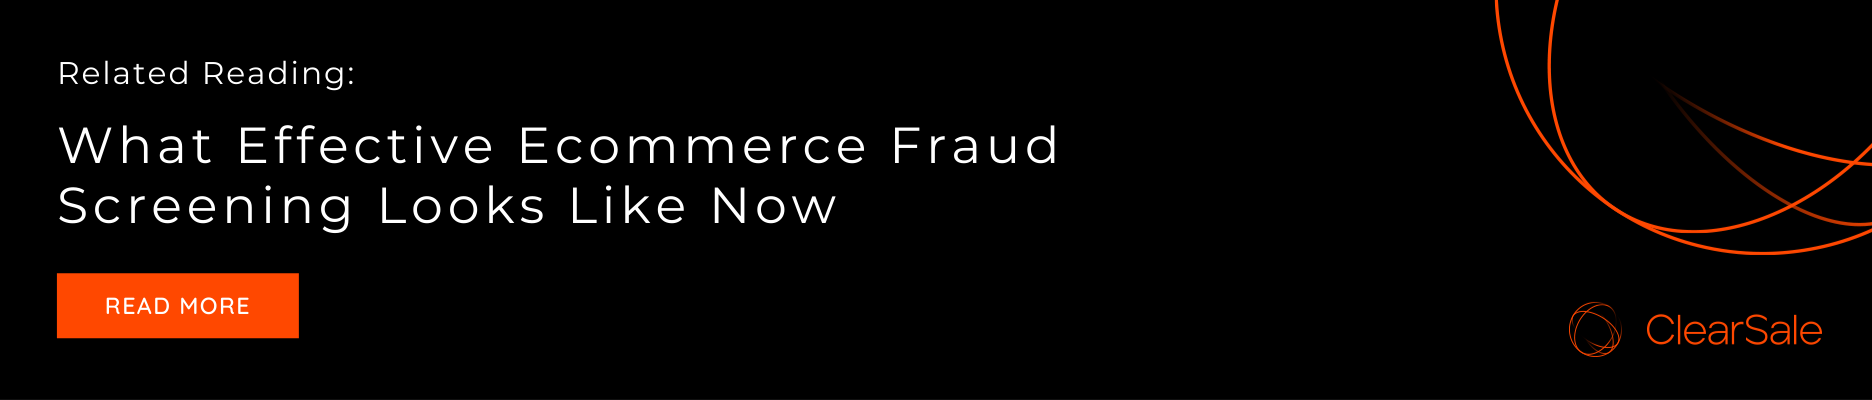 Related Reading: What Effective eCommerce Fraud Screening Looks Like Now